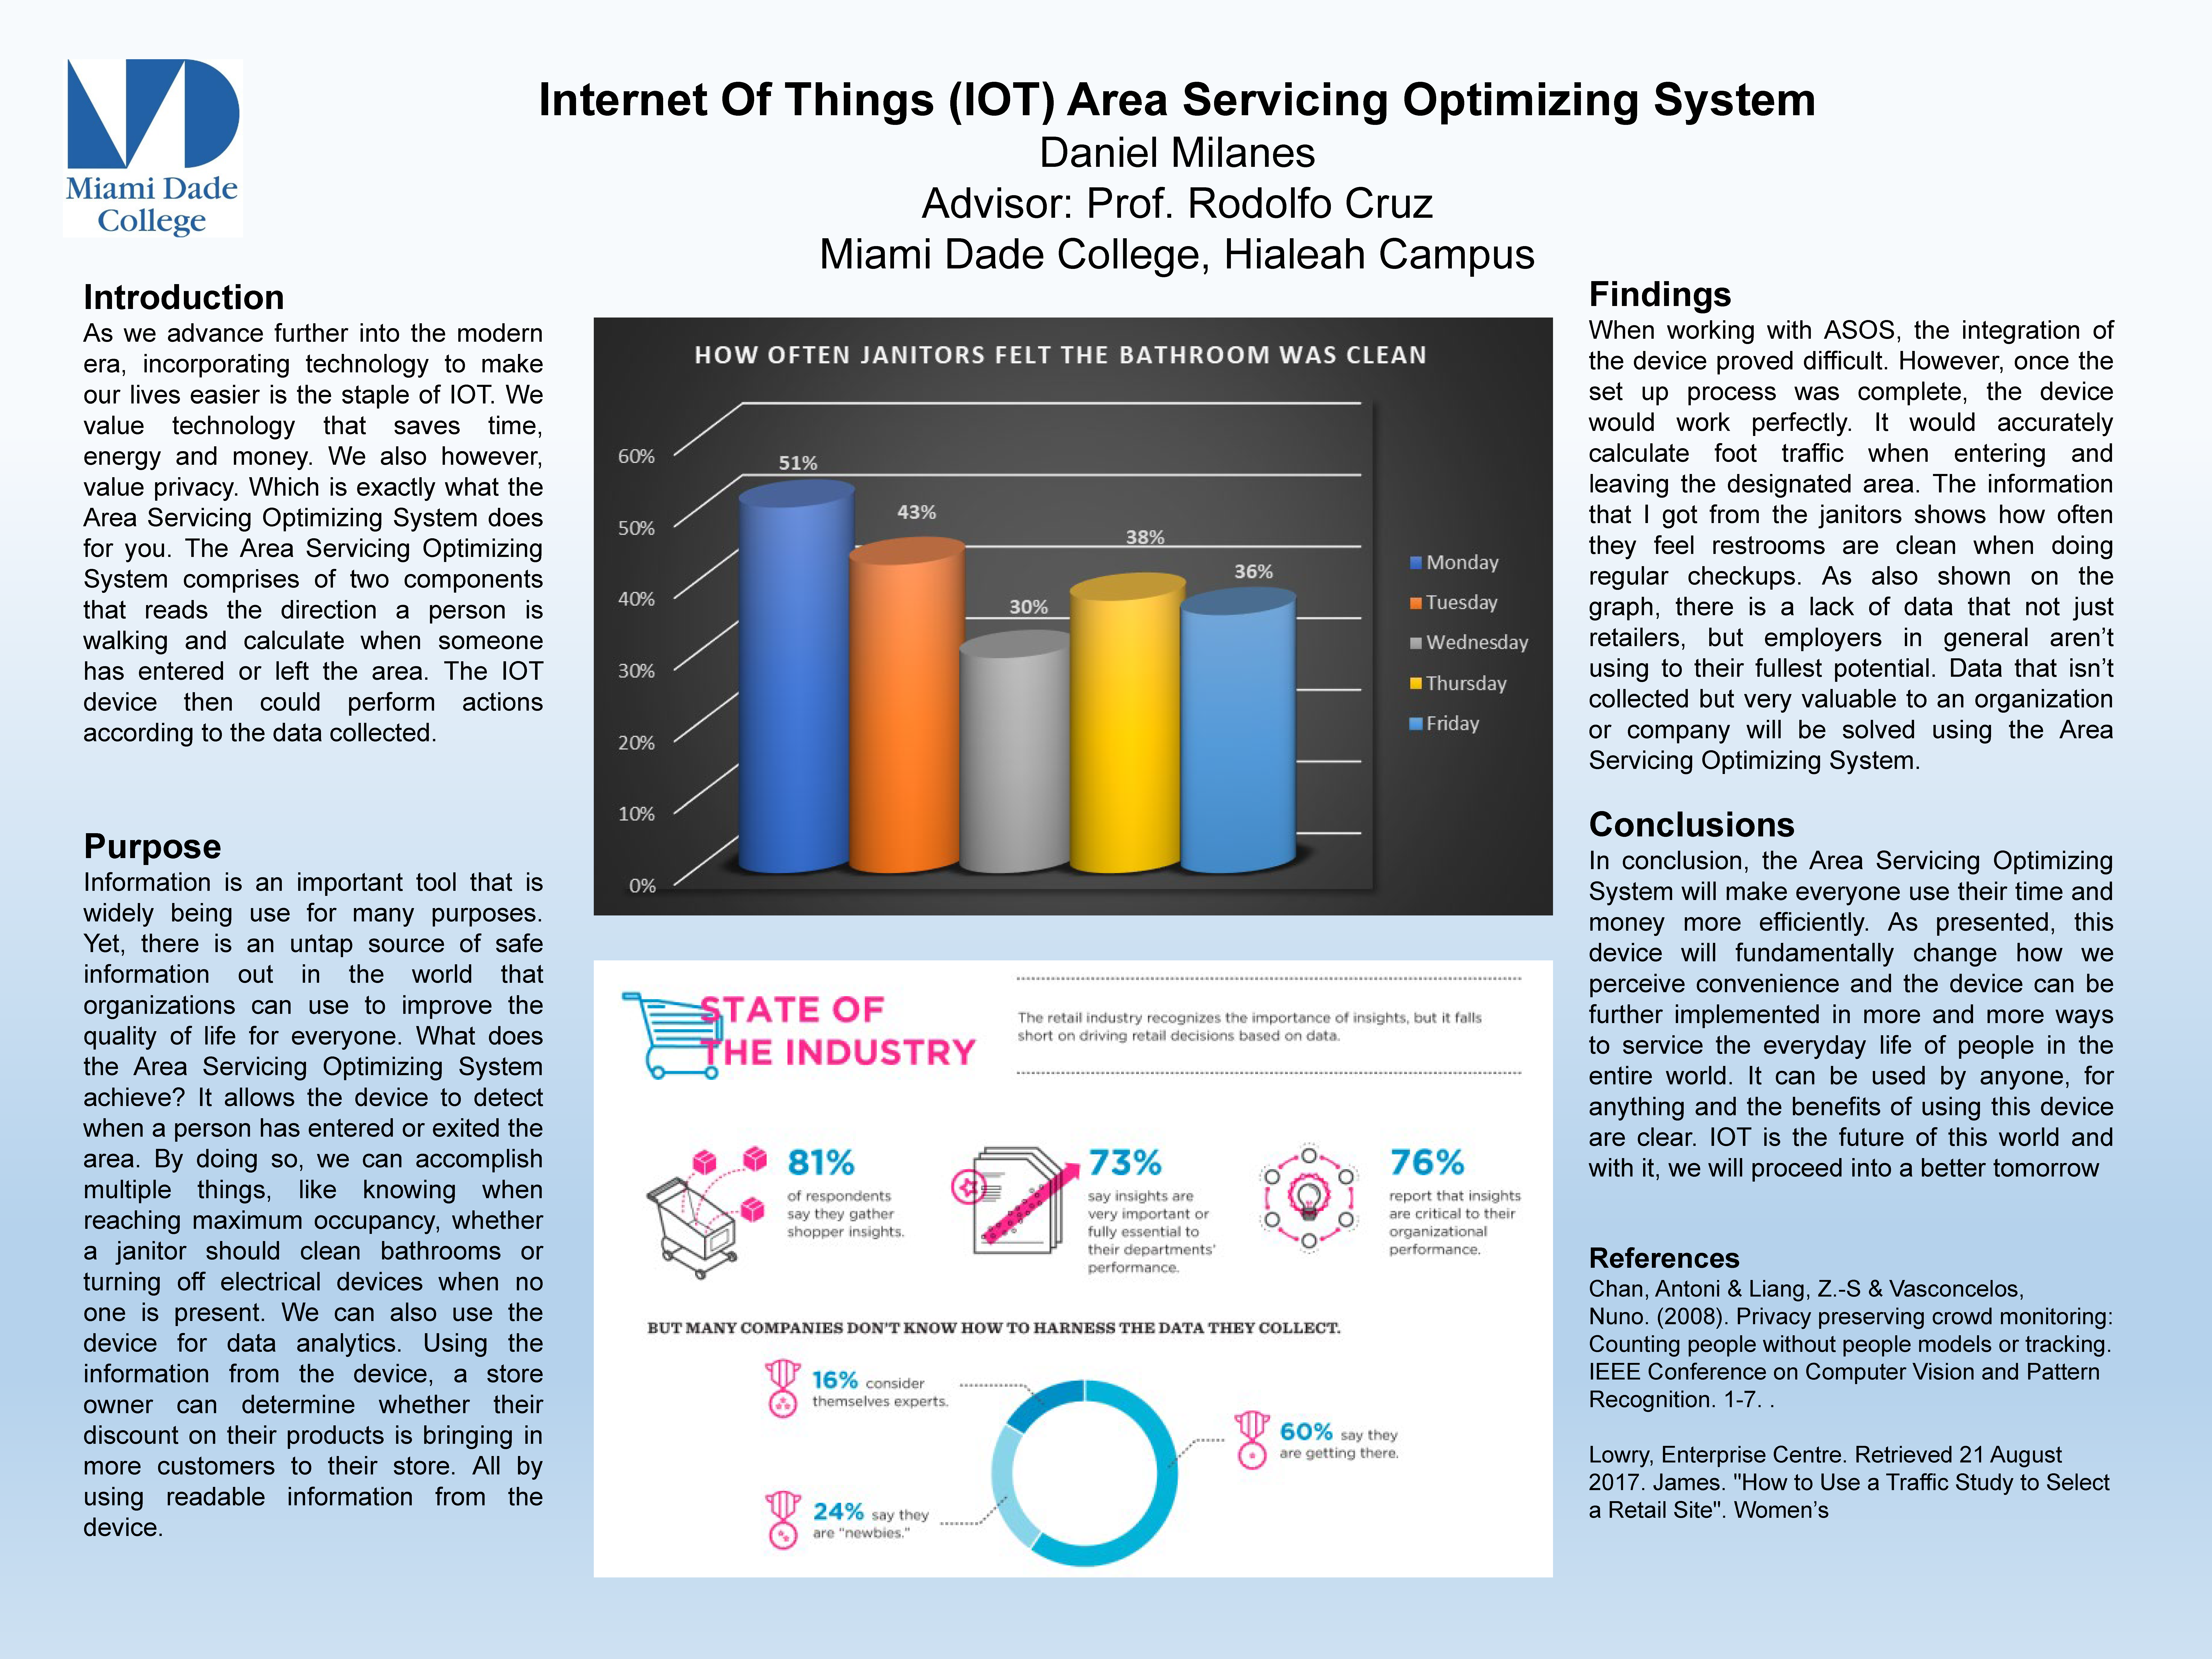 Internet of Things (IOT) Area Servicing Optimizing System